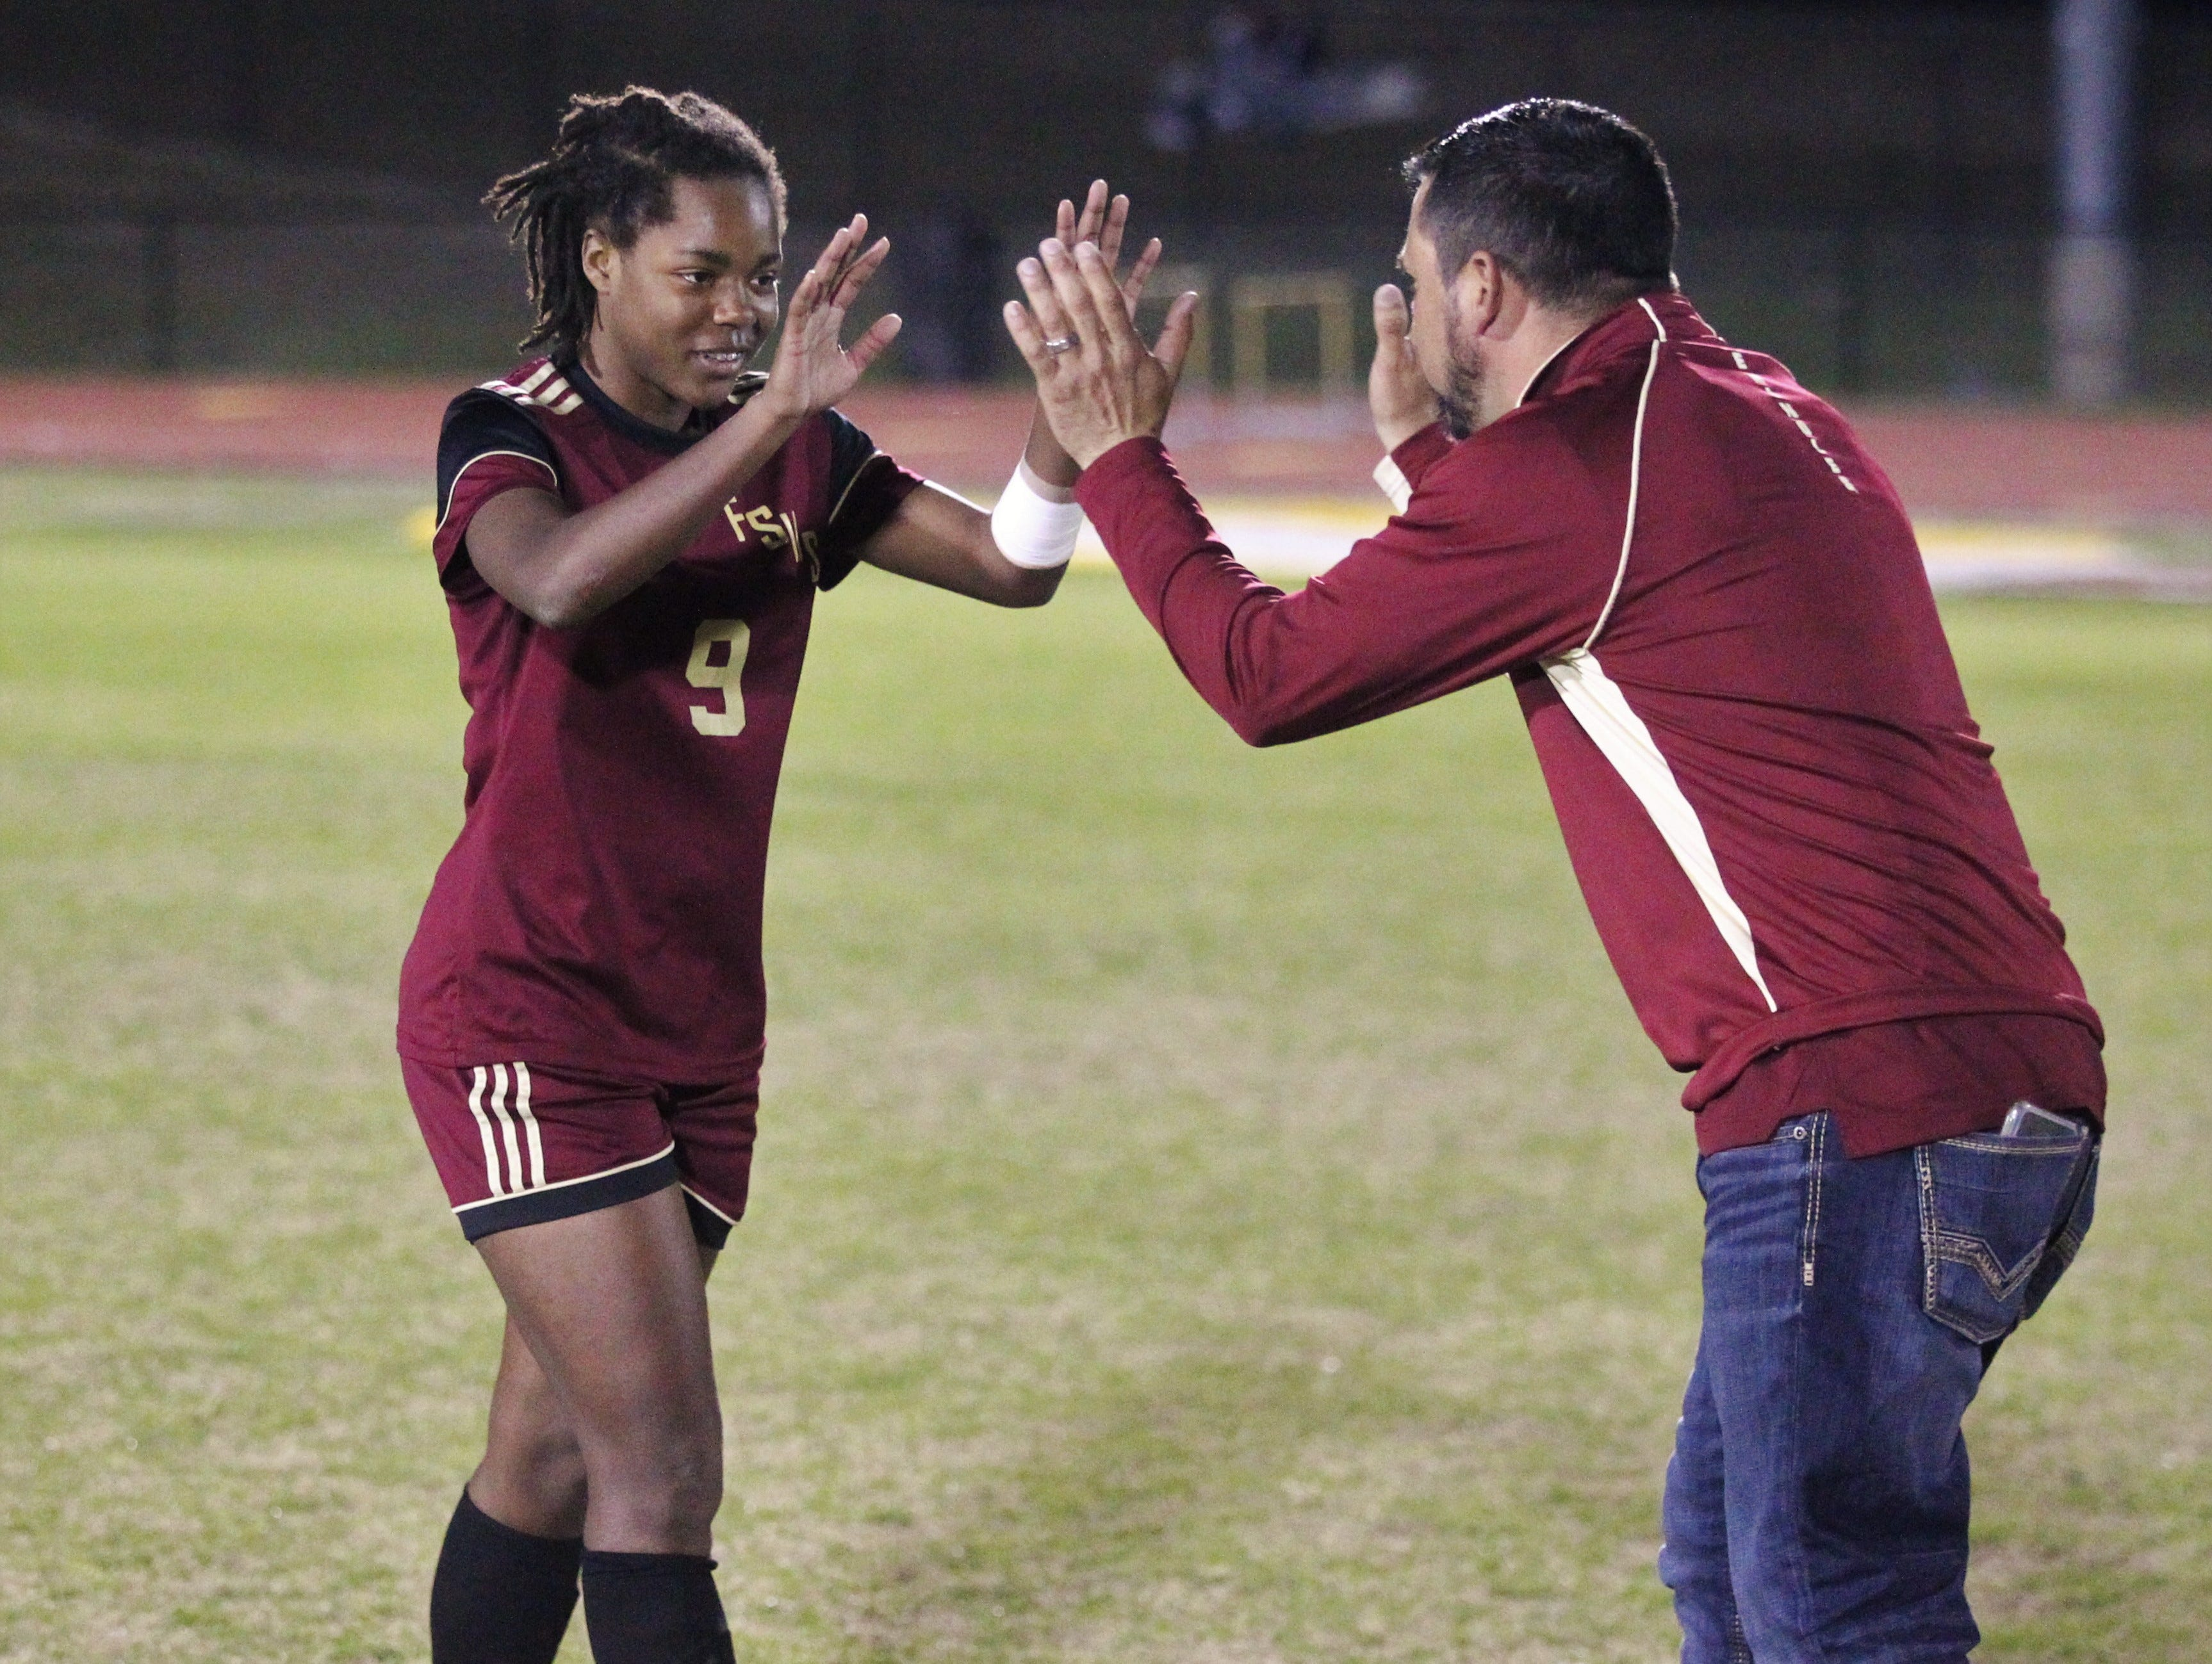 Florida High's Janae Scott is greeted by a coach after making a PK as South Walton's girls soccer team edged the Seminoles 5-4 in a penalty-kick shootout during a Region 1-2A semifinal on Feb. 8, 2019.